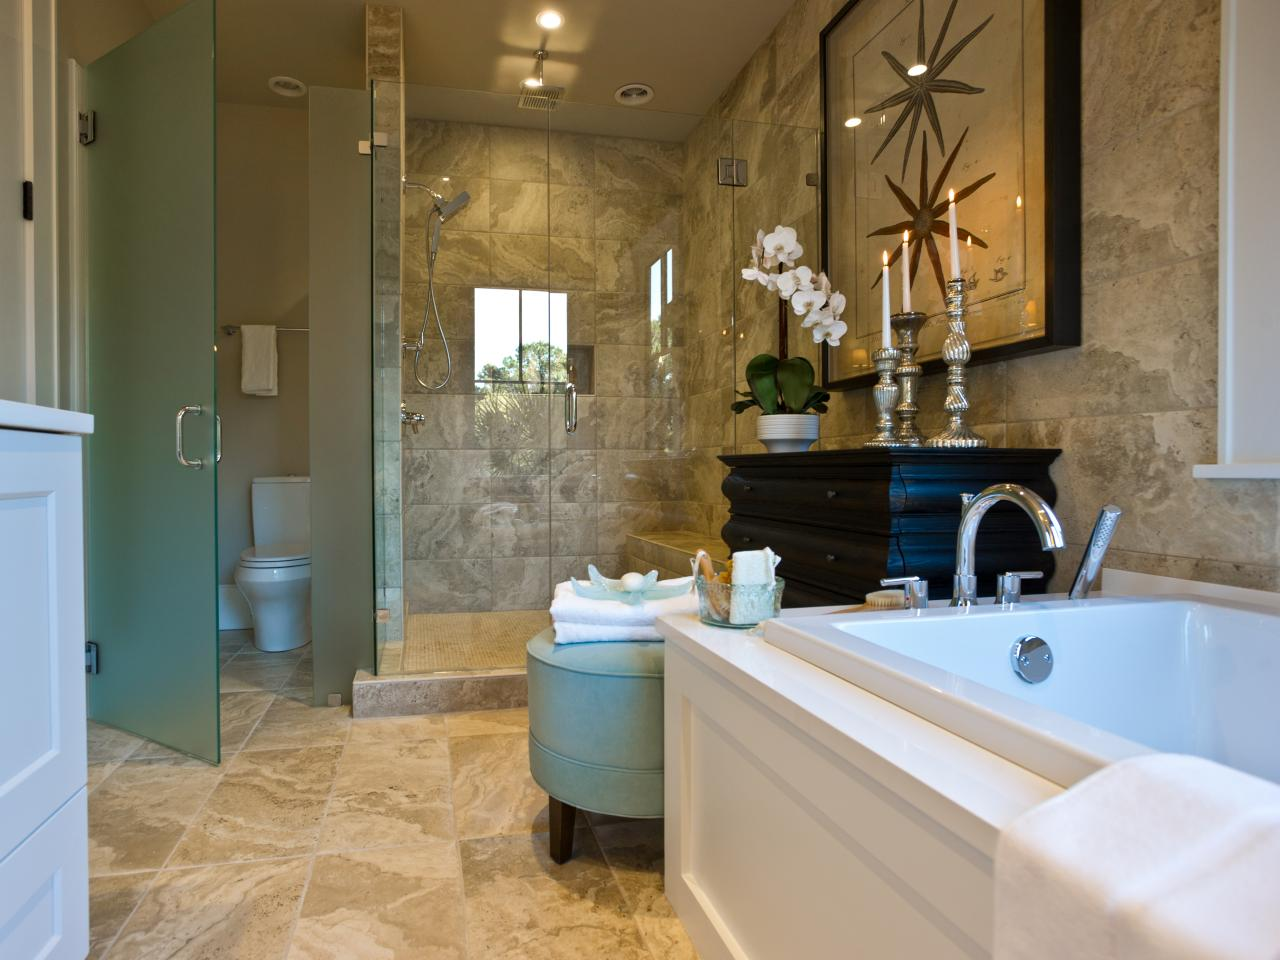 Hgtv dream home 2013 master bathroom pictures and video for Master bathroom ideas